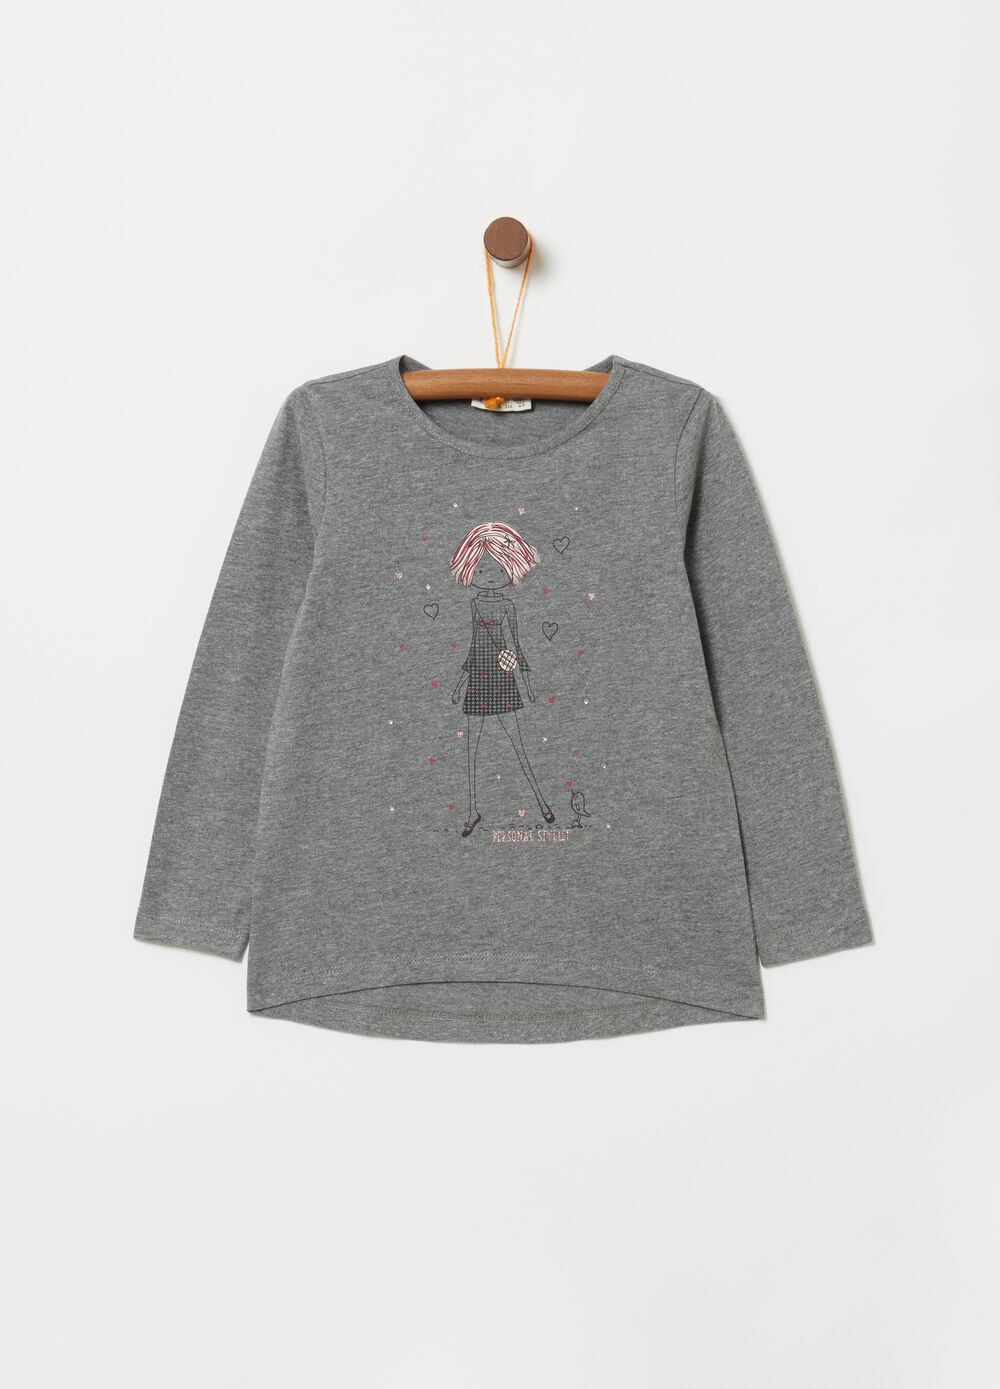 T-shirt with glitter print and long sleeves